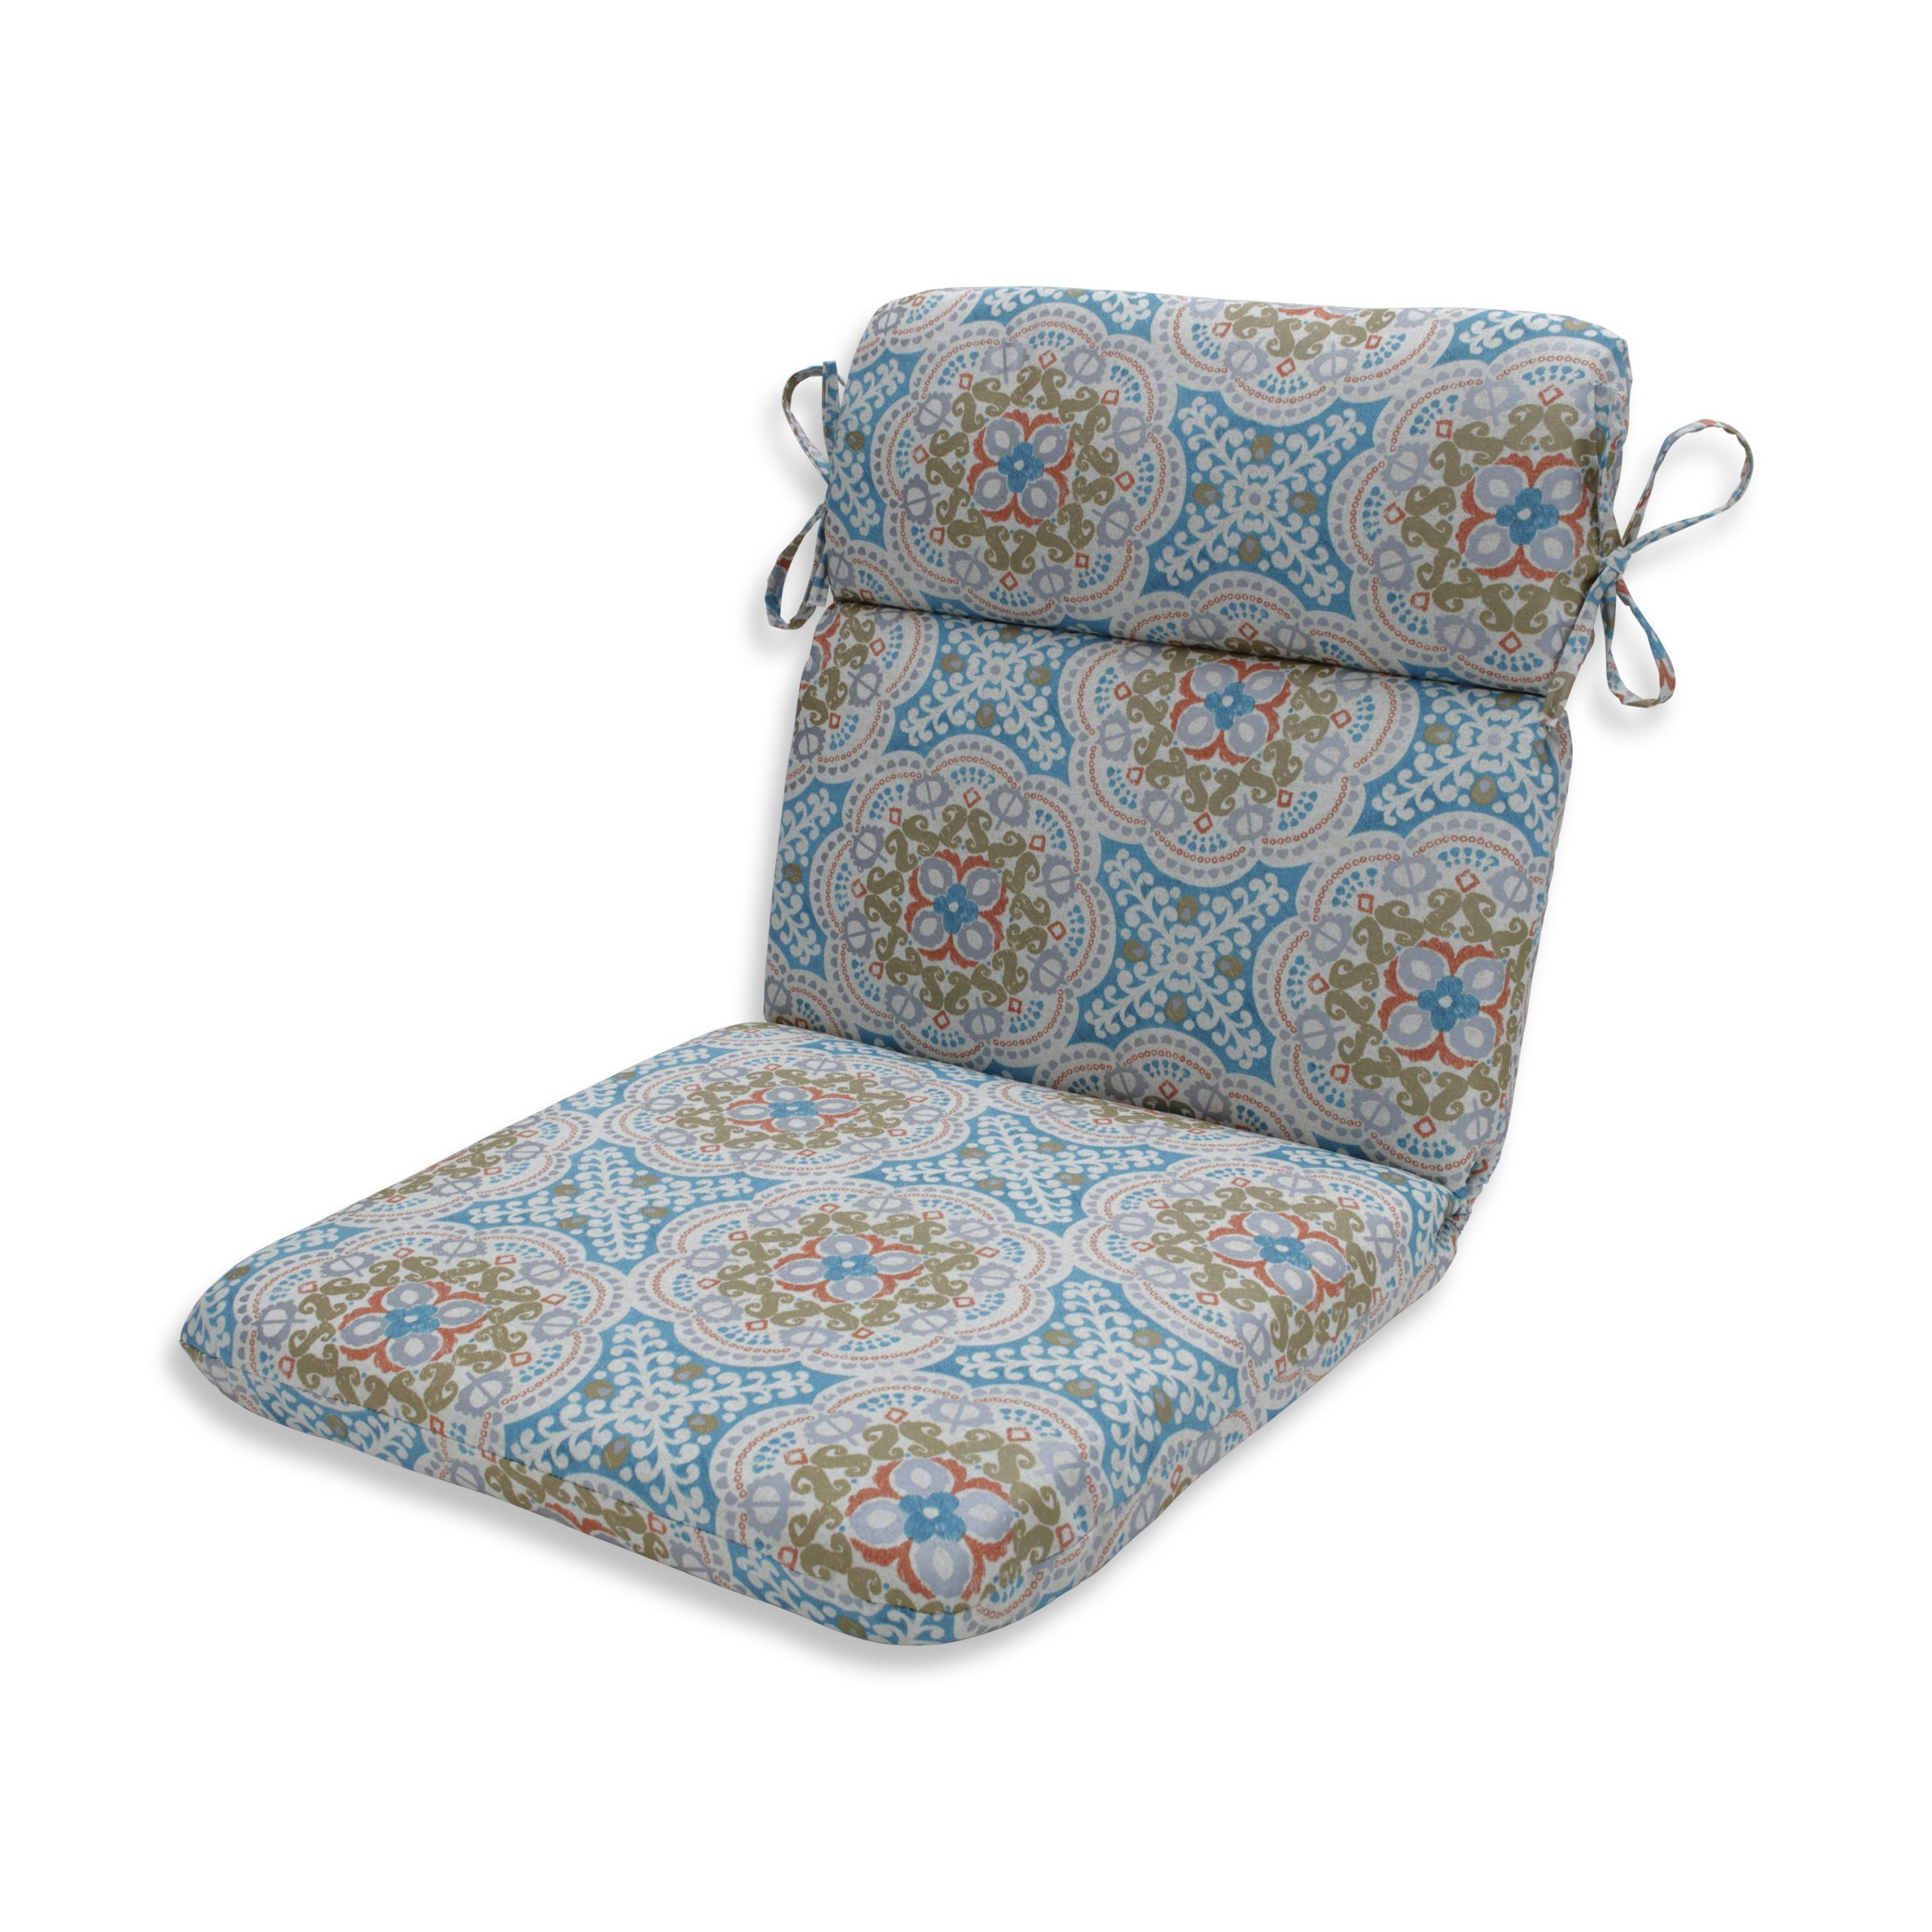 Details About Pillow Perfect Outdoor / Indoor Astrid Aqua Blue Rounded Corners Chair Cushion Pertaining To Most Up To Date Astrid Wicker Patio Sofas With Cushions (Gallery 15 of 25)